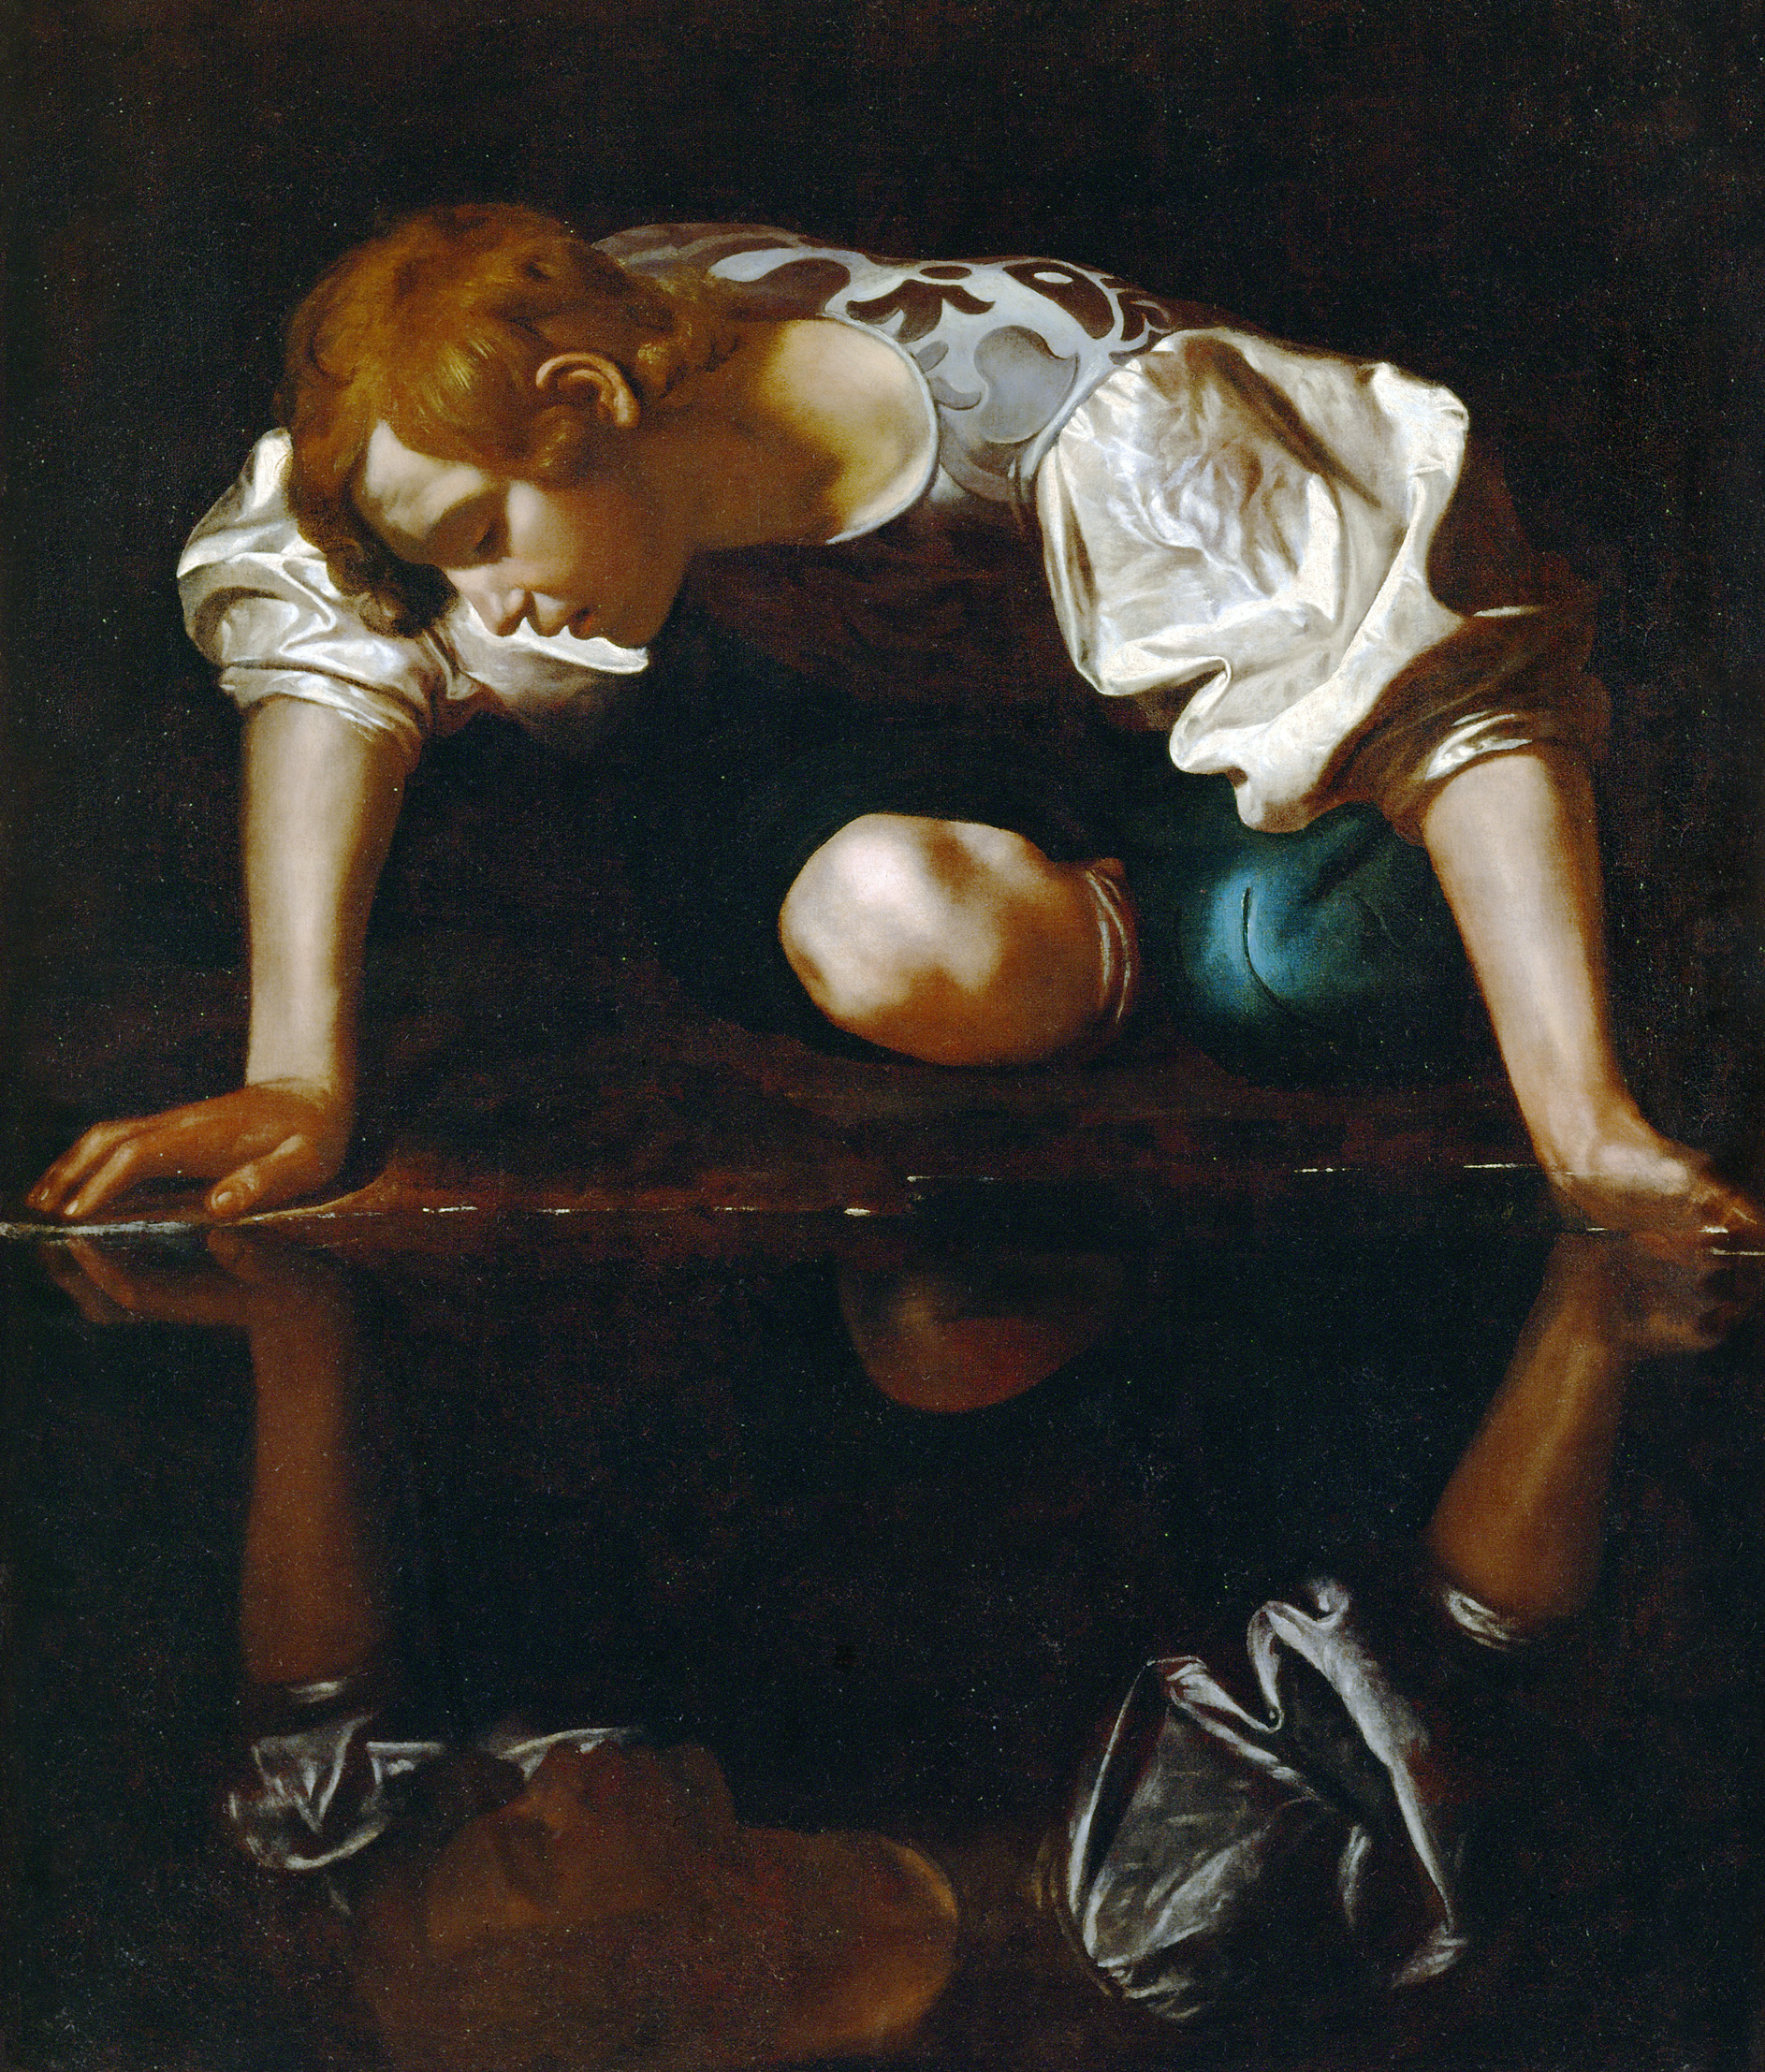 Narcissus, by Michelangelo Merisi da Caravaggio, c. 1597. National Gallery of Ancient Art, Rome.